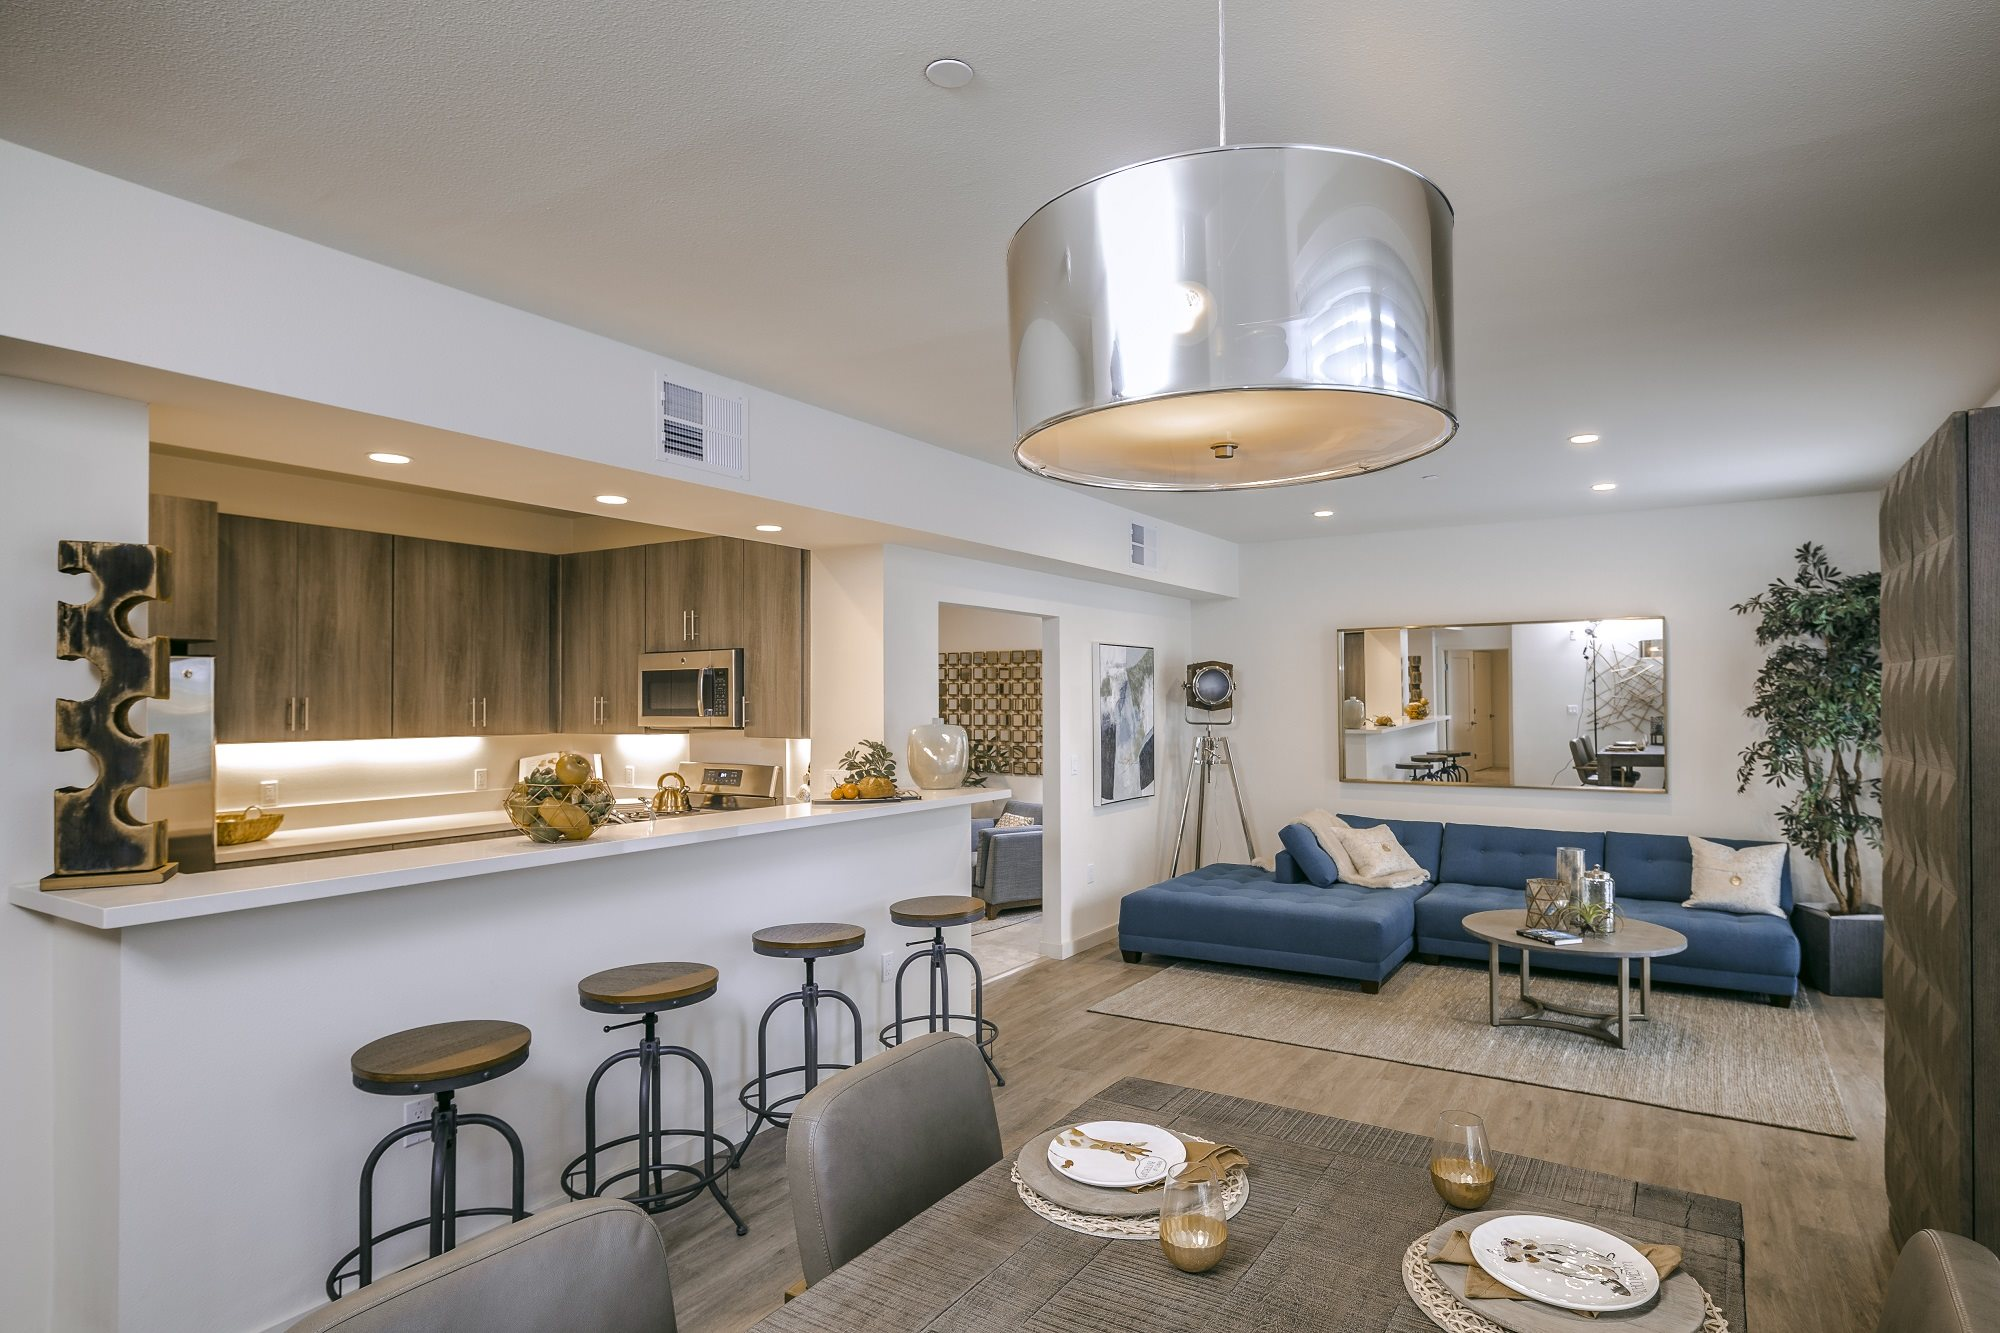 The reserve at seabridge apartments in oxnard ca - 2 bedroom apartments for rent in oxnard ca ...